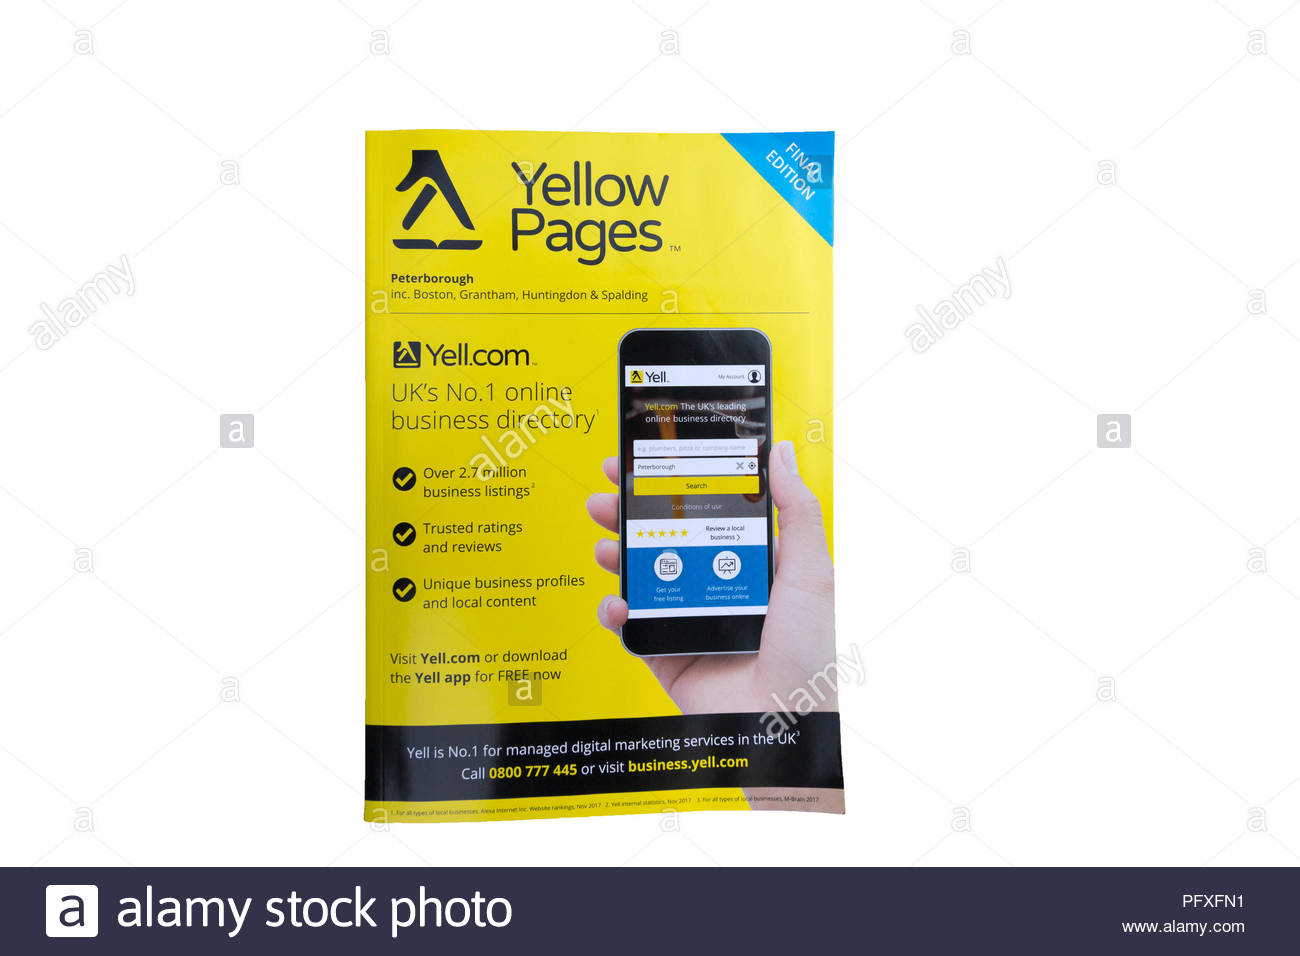 Last Edition of the Yellow Pages, isolated on a white background - Stock Image